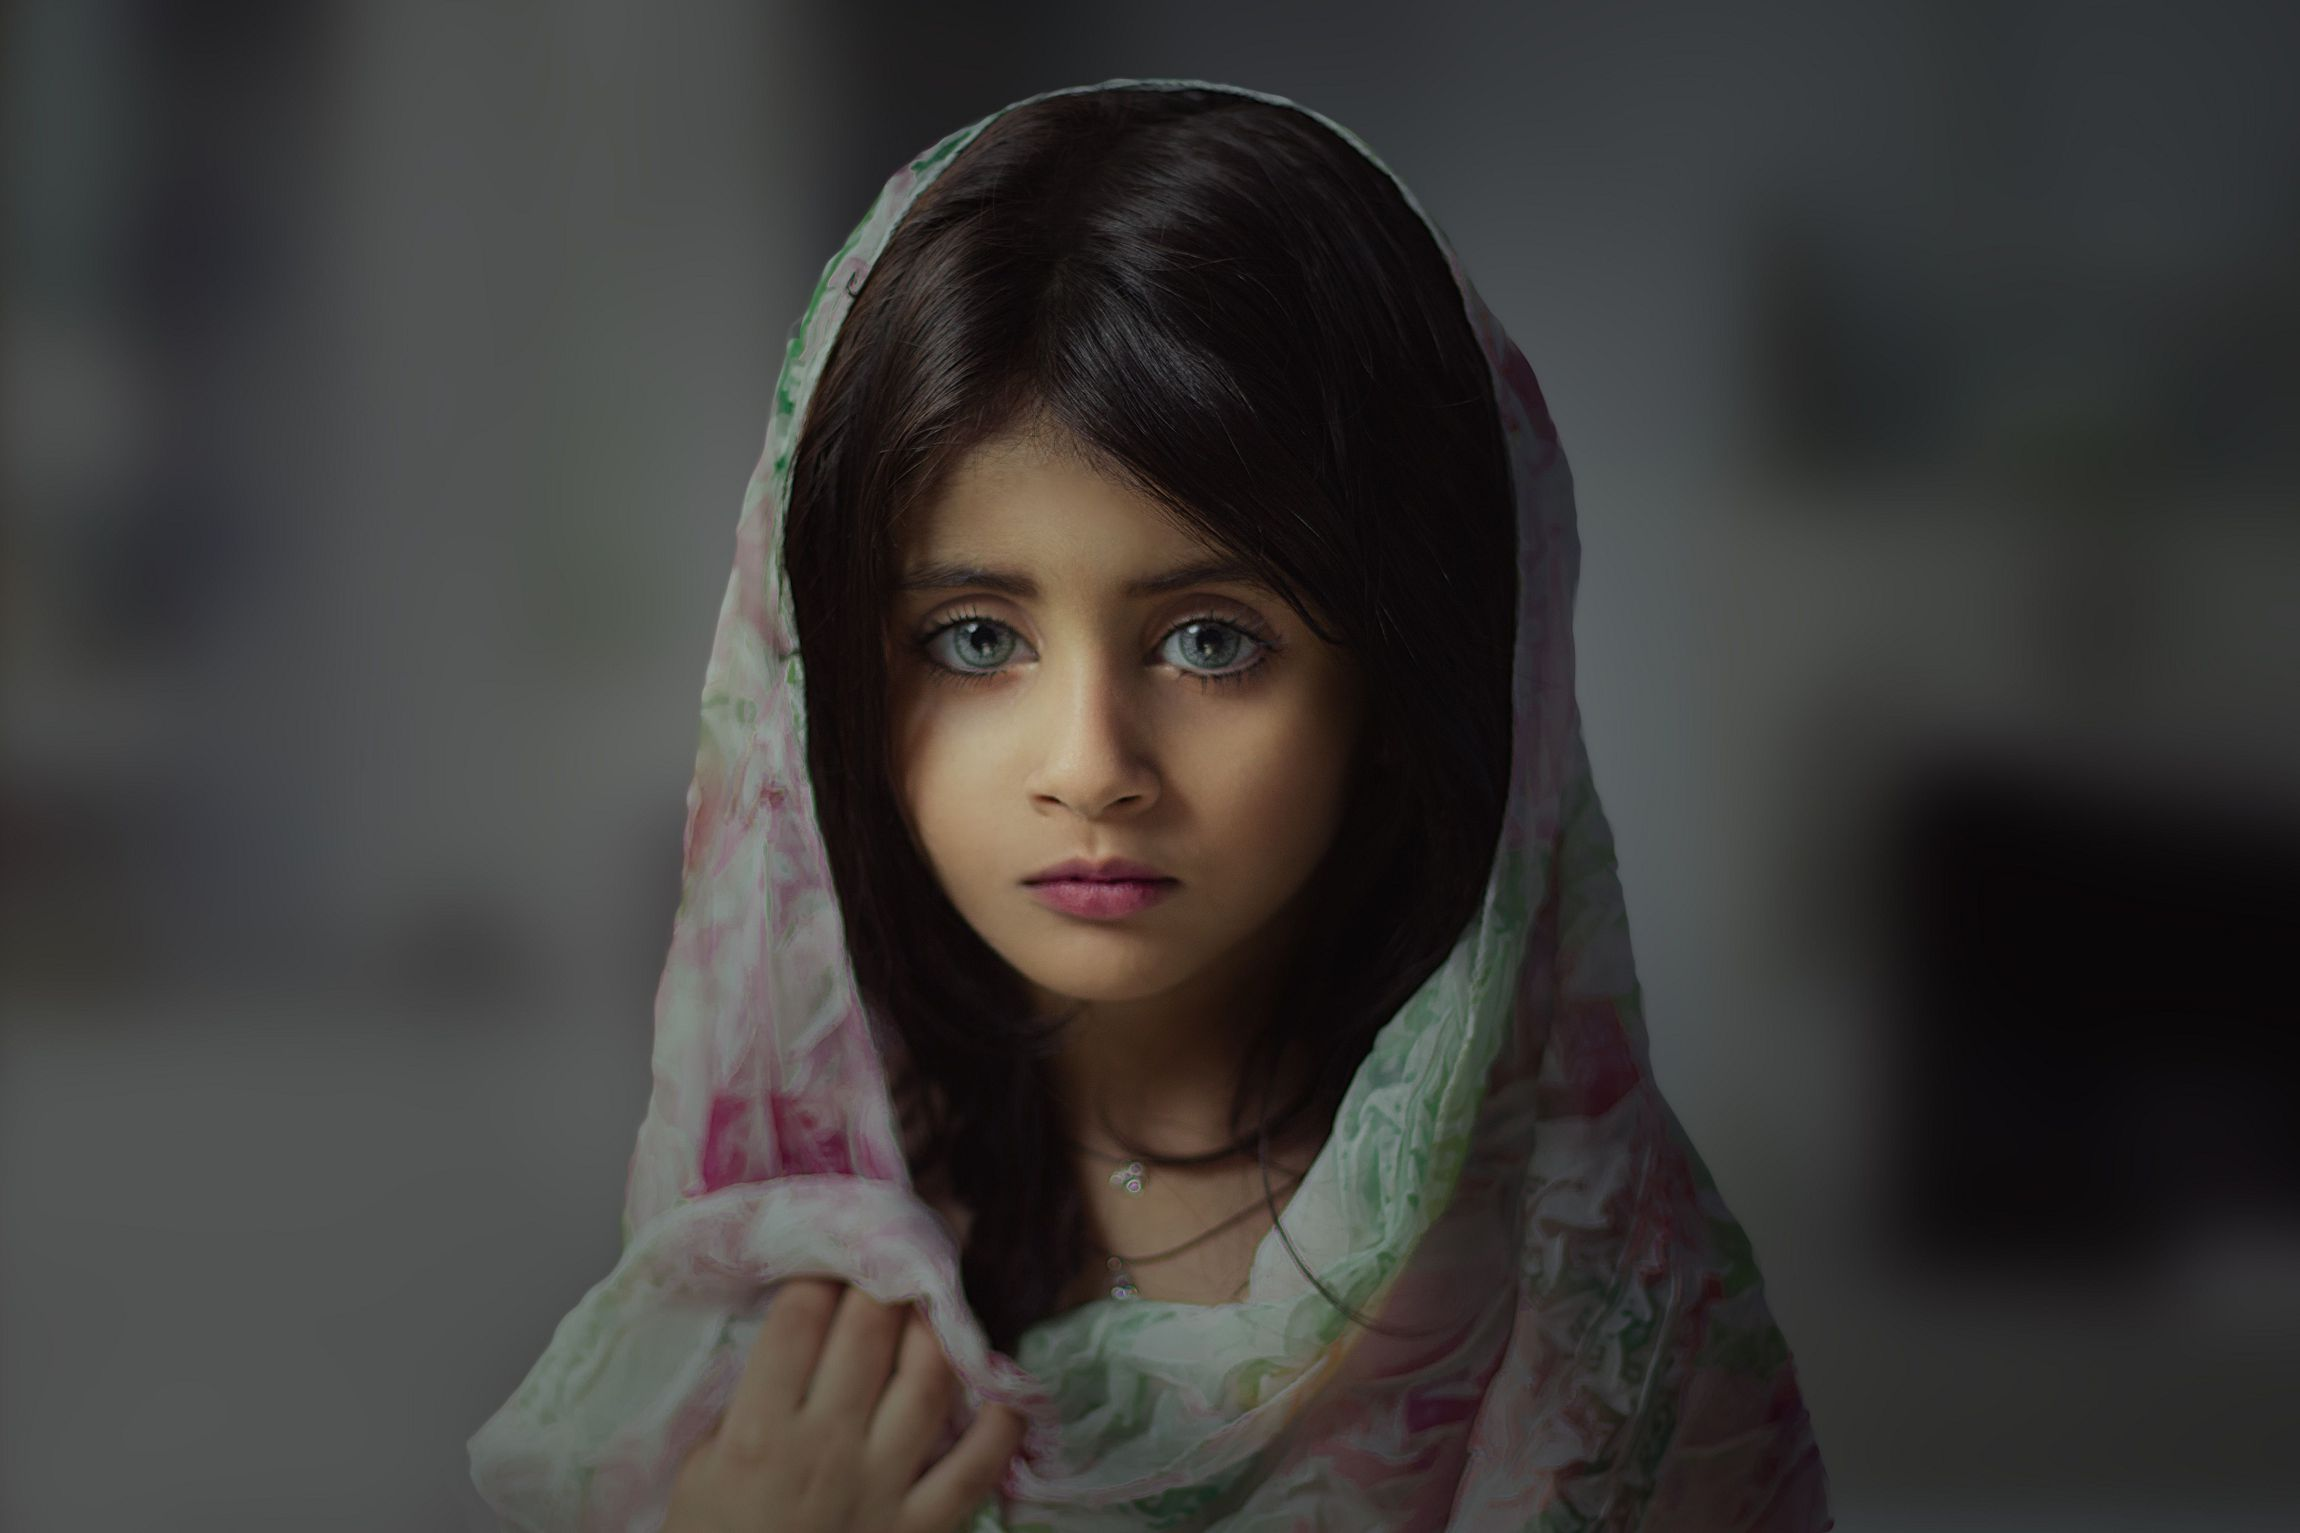 Arab Girl High Definition Wallpapers